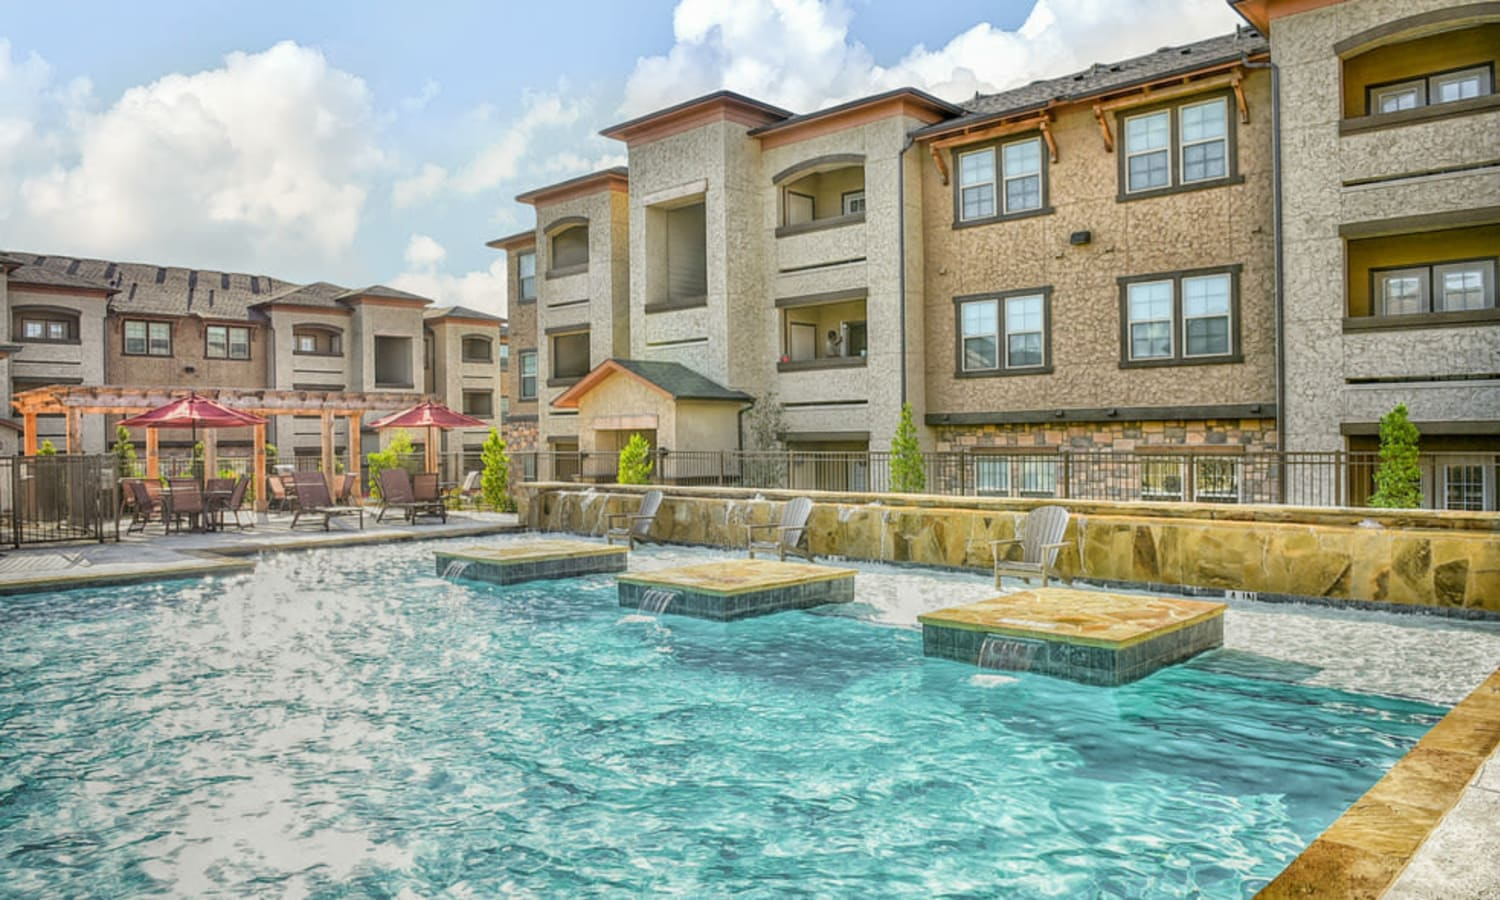 A beautiful pool at Overlook Ranch in Fort Worth, Texas